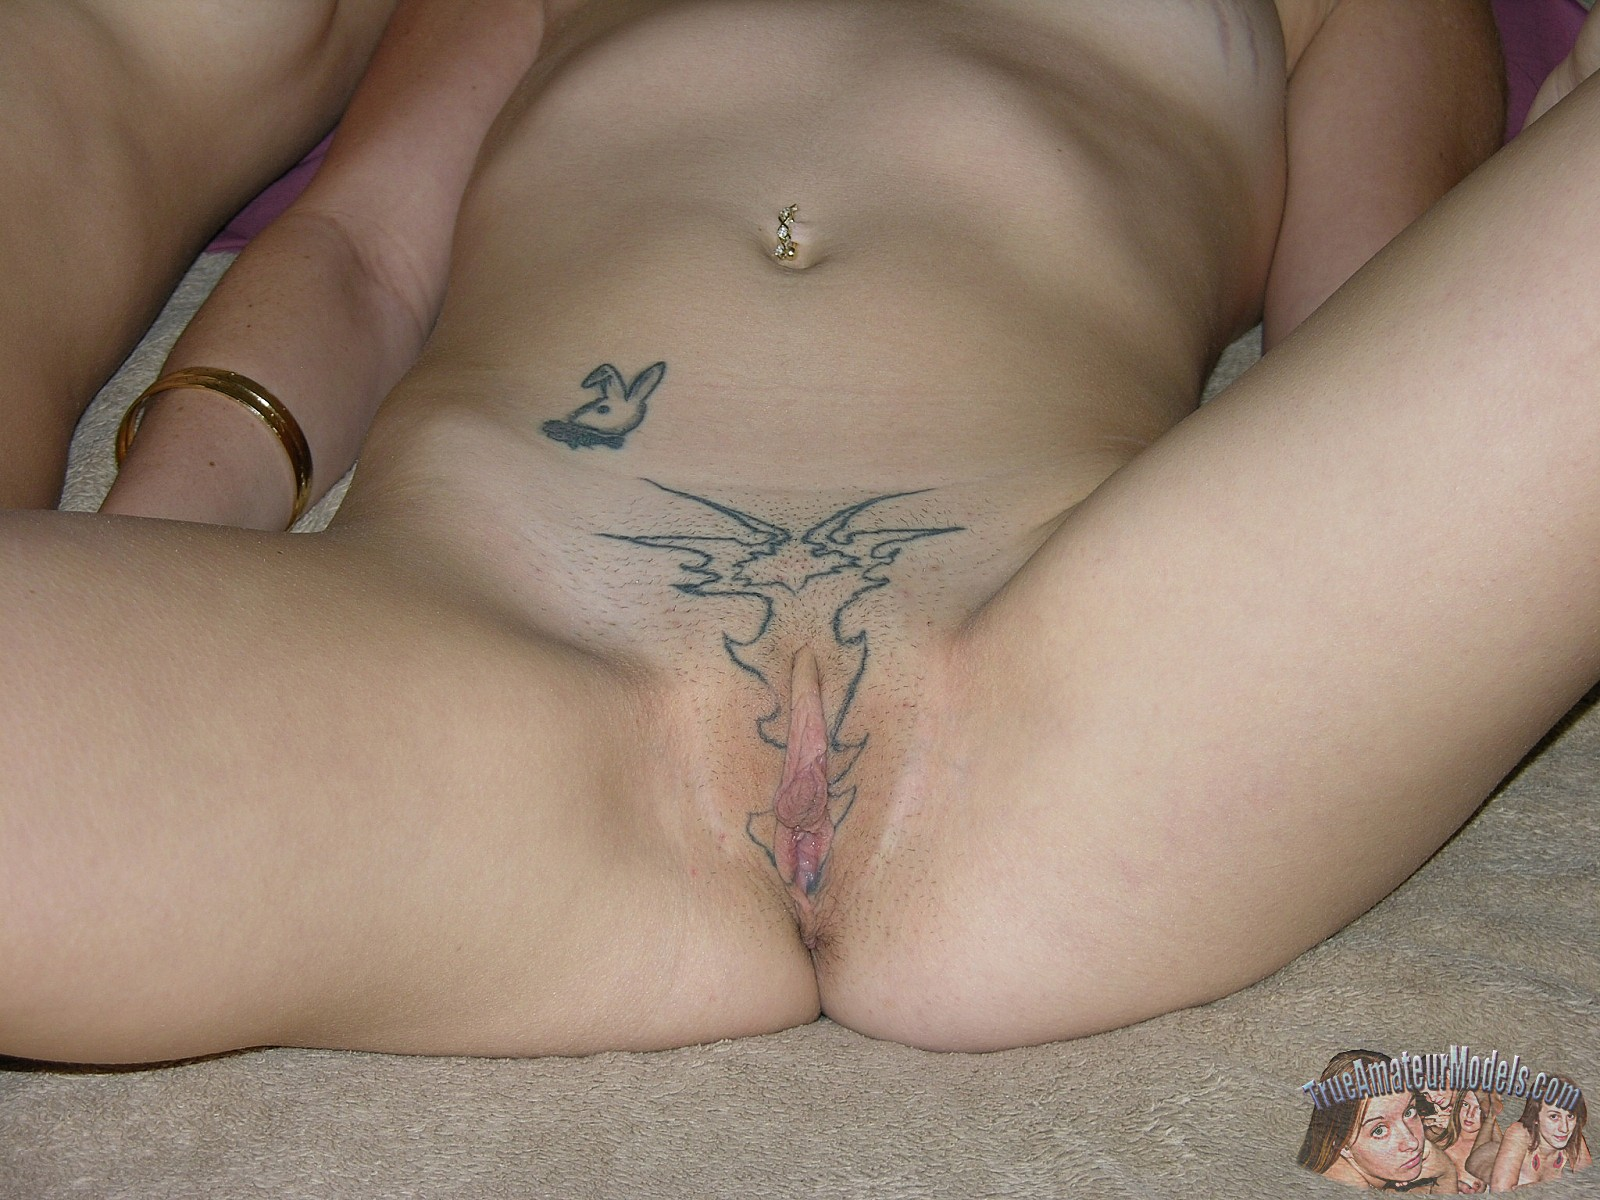 girl vaginal tattoo nude